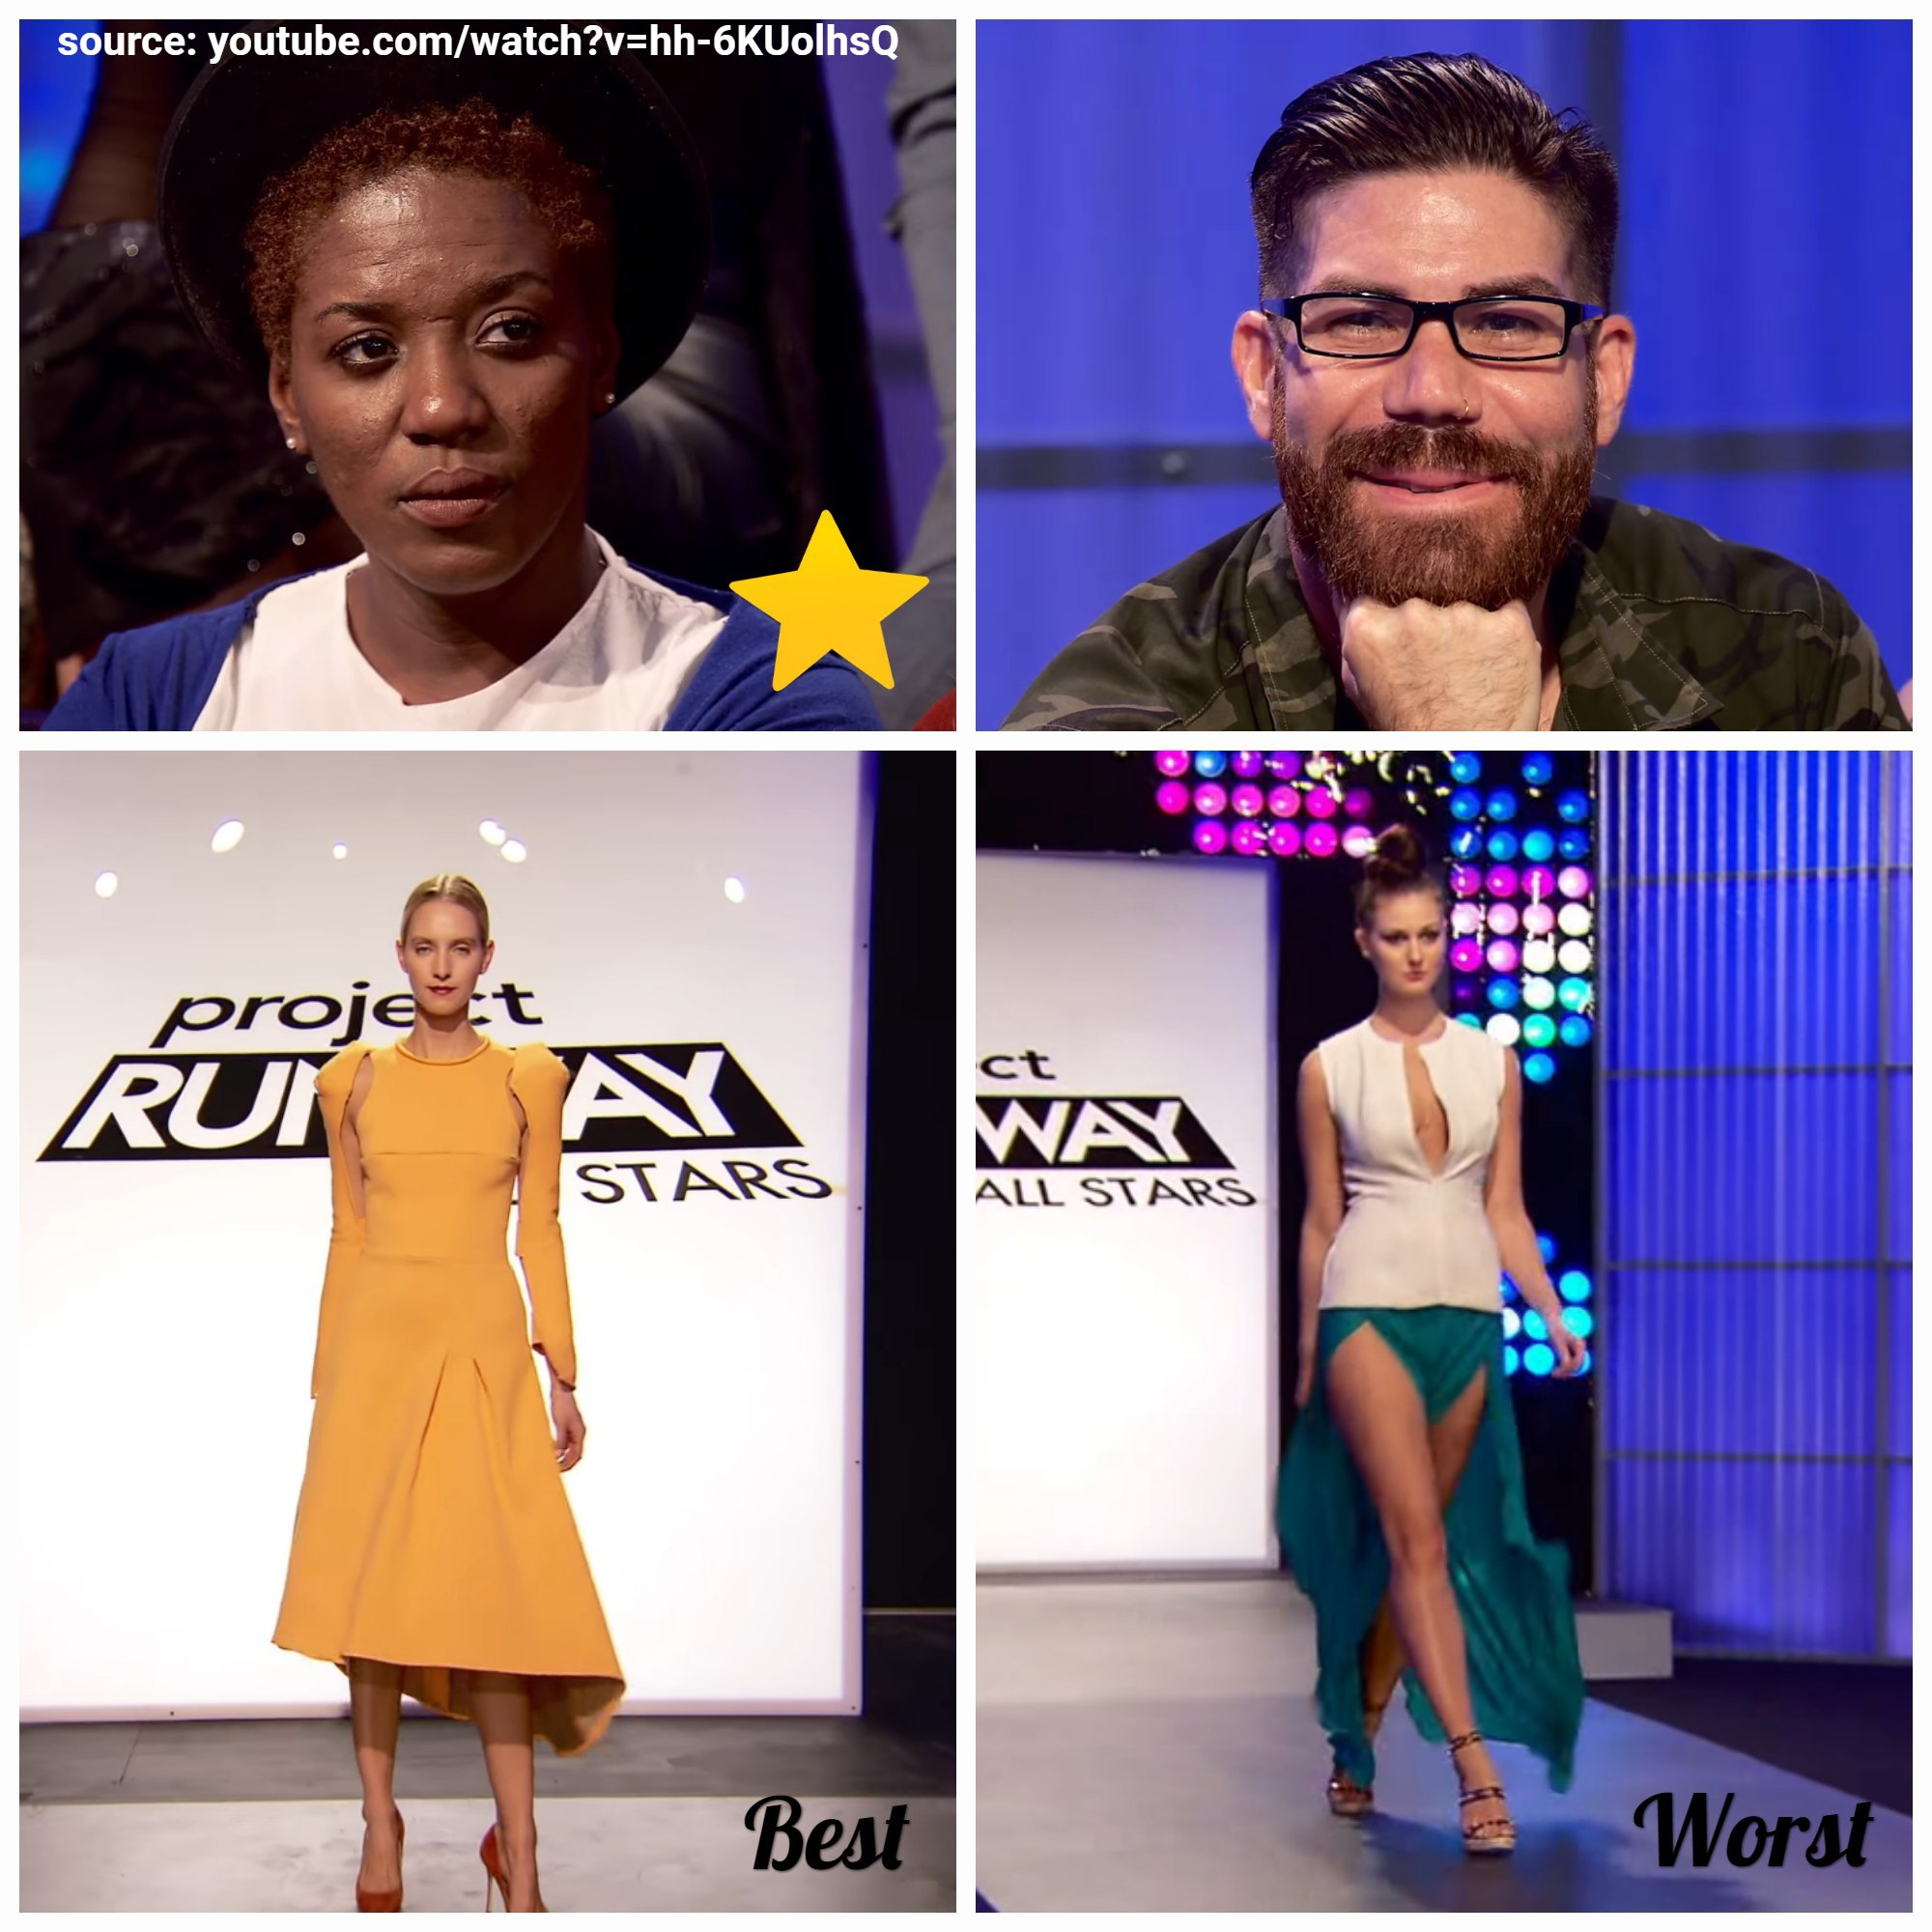 Project Runway All Stars season 6 episode 1 winner, best and worst design, who got eliminated